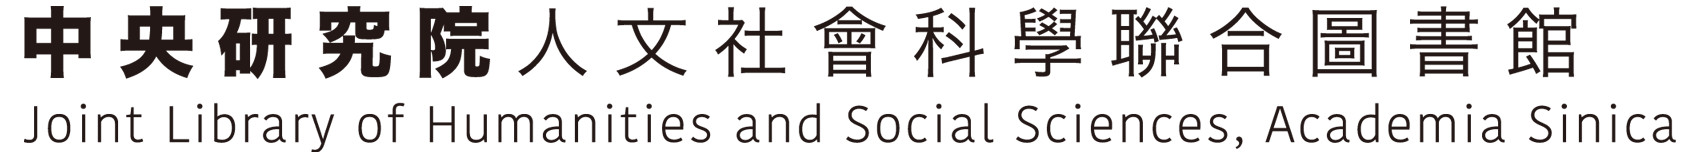 joint Library of Humanities and Social Scial Science, Academia sinica